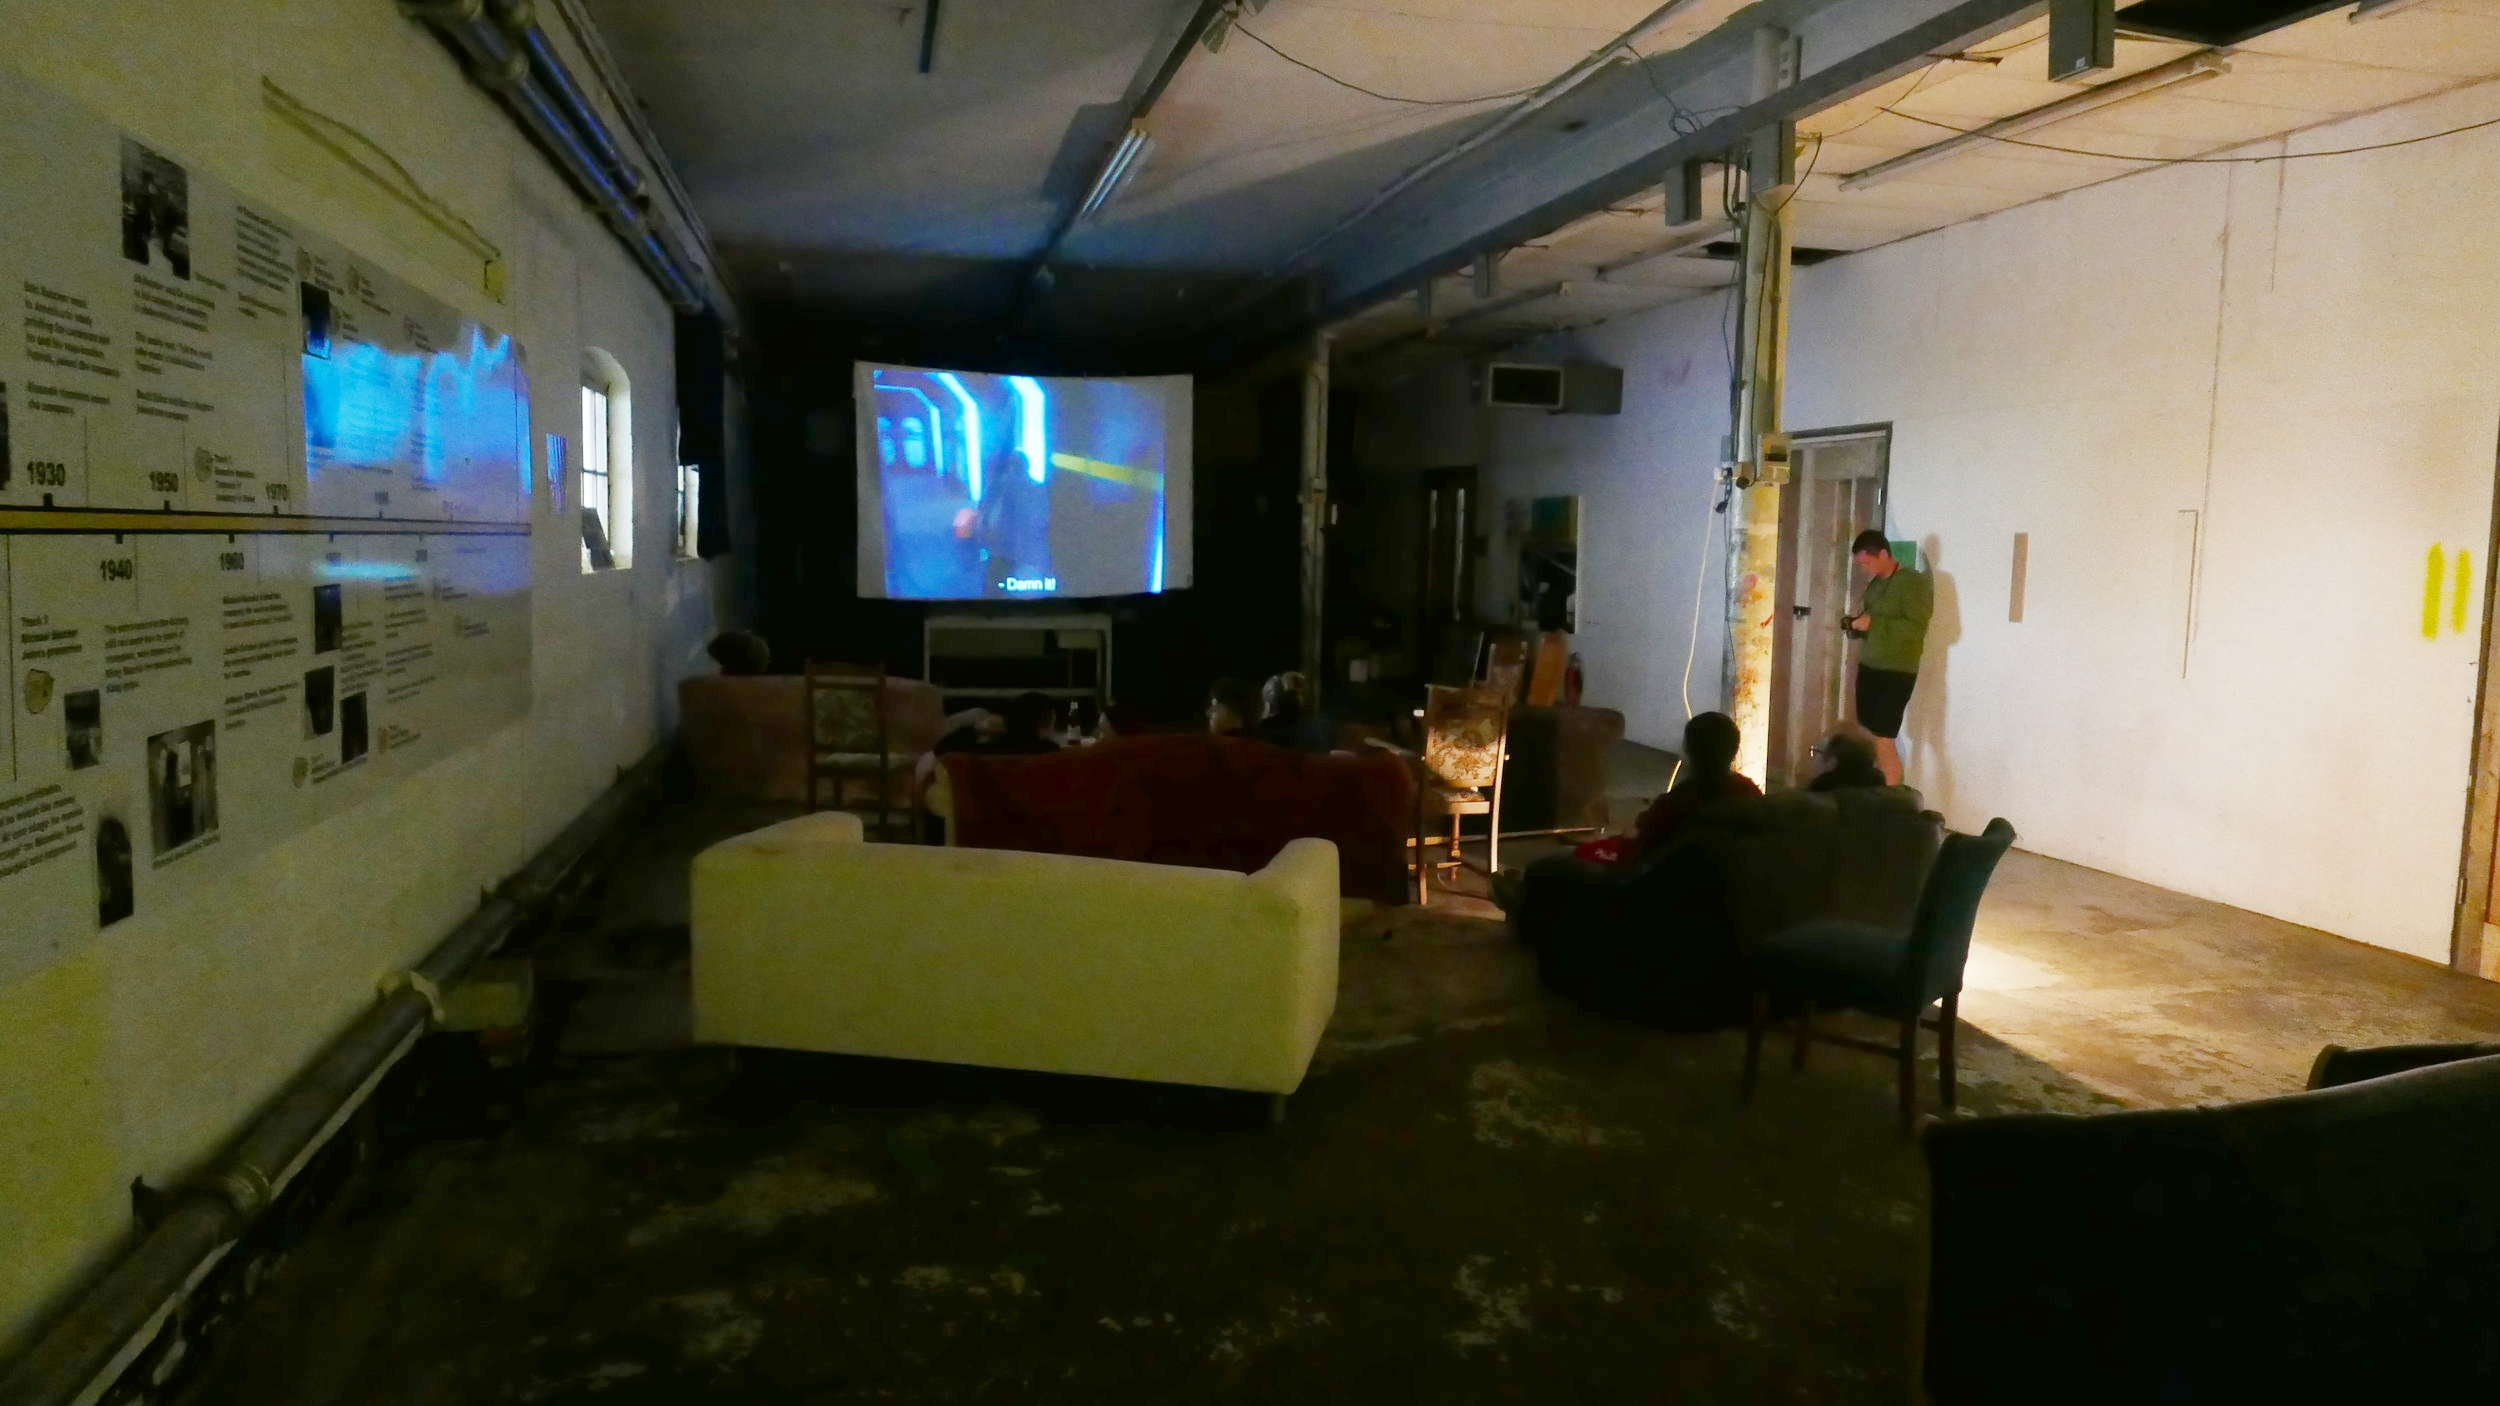 Films being shown in the Lower Gallery